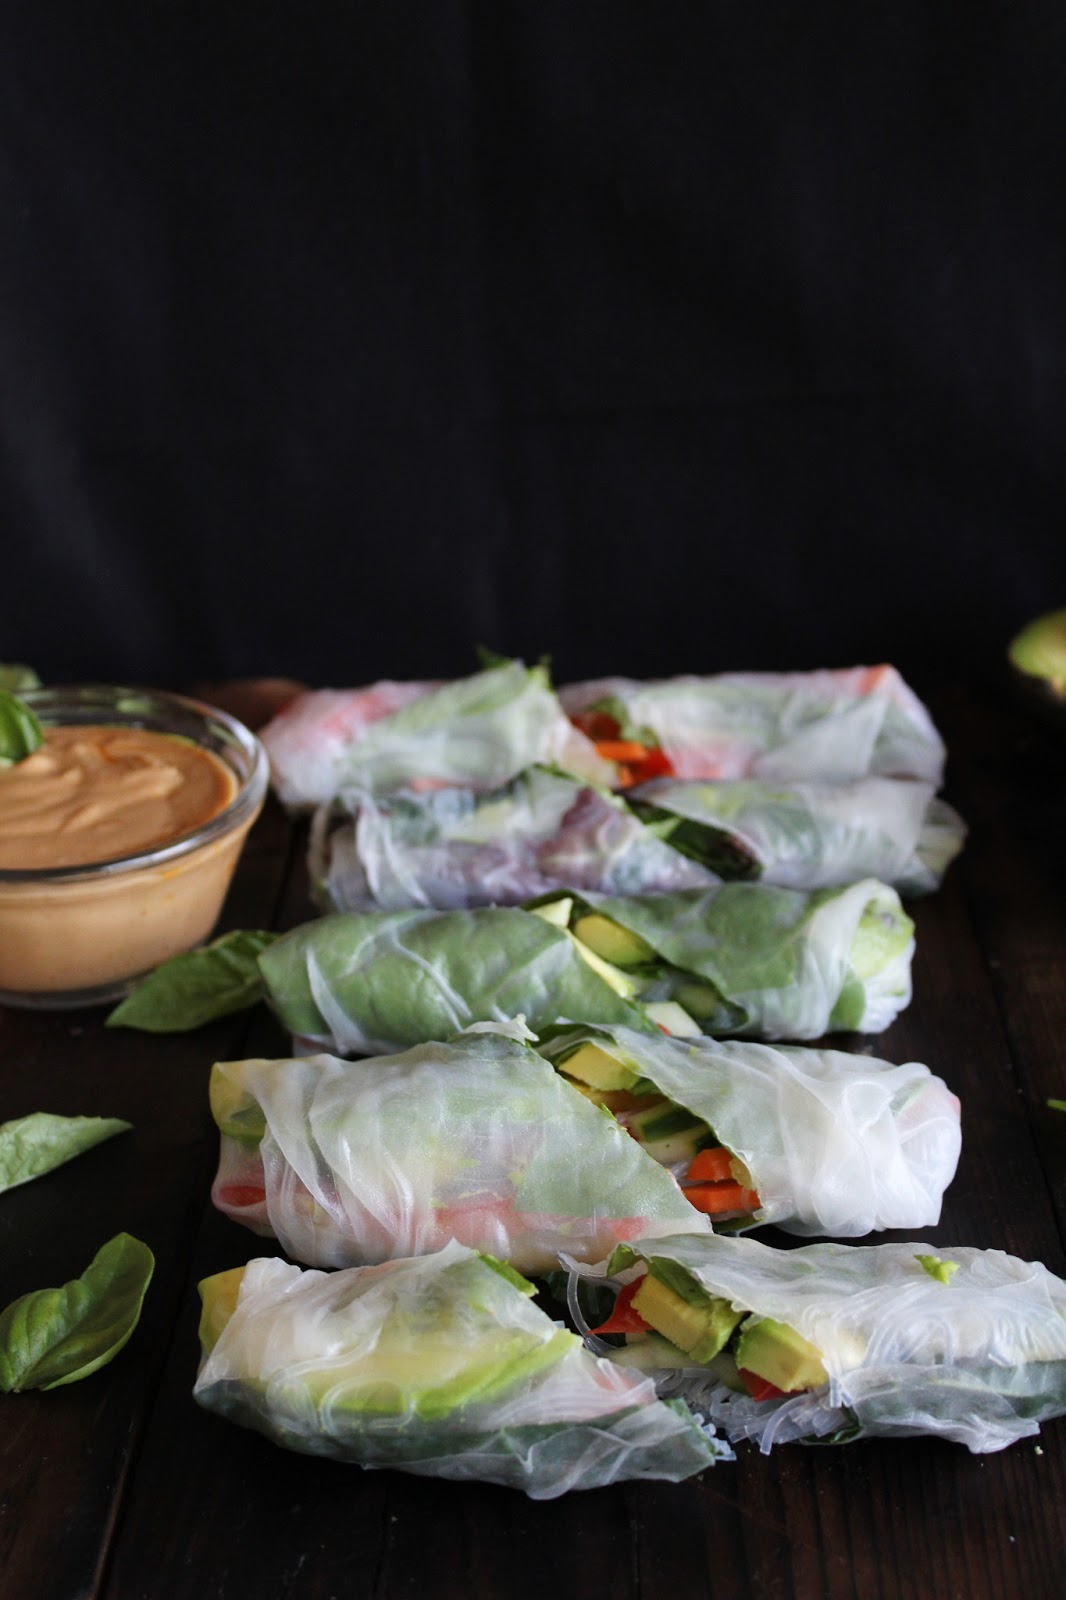 ... summer rolls with basil, avocado, kale + spicy garlic peanut sauce